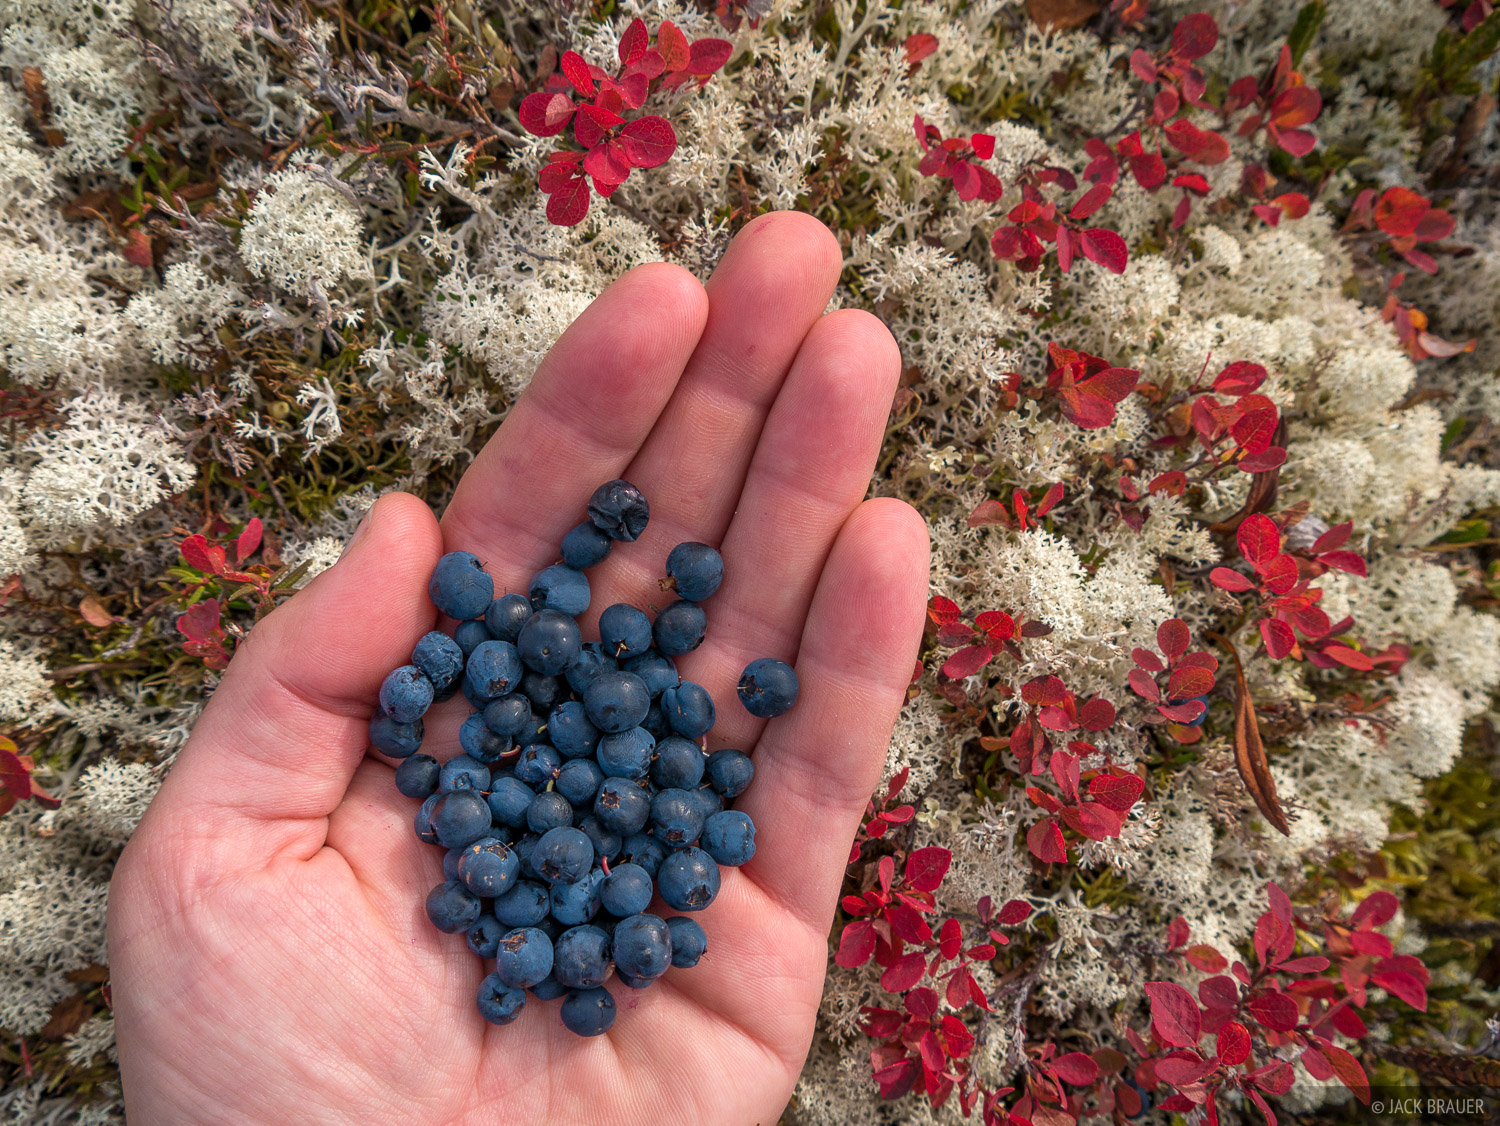 The autumn tundra bursting with delicious wild blueberries. In order to pack light for this trip, we probably didn't bring quite...